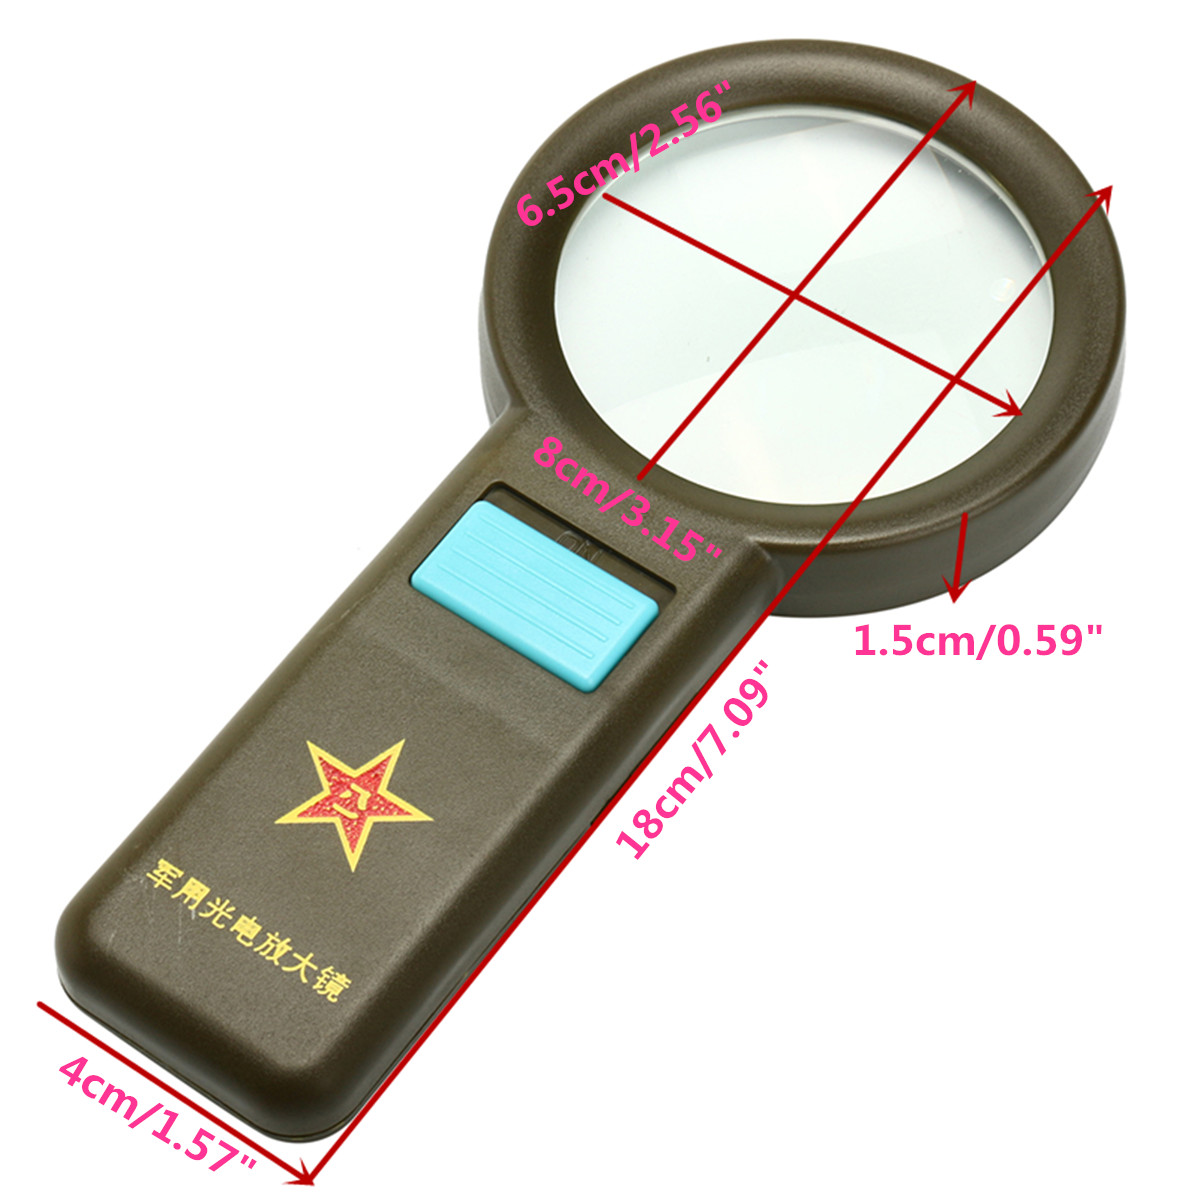 10X LED Handheld 10X Magnifier Giant Large Magnifying Glass with White Light